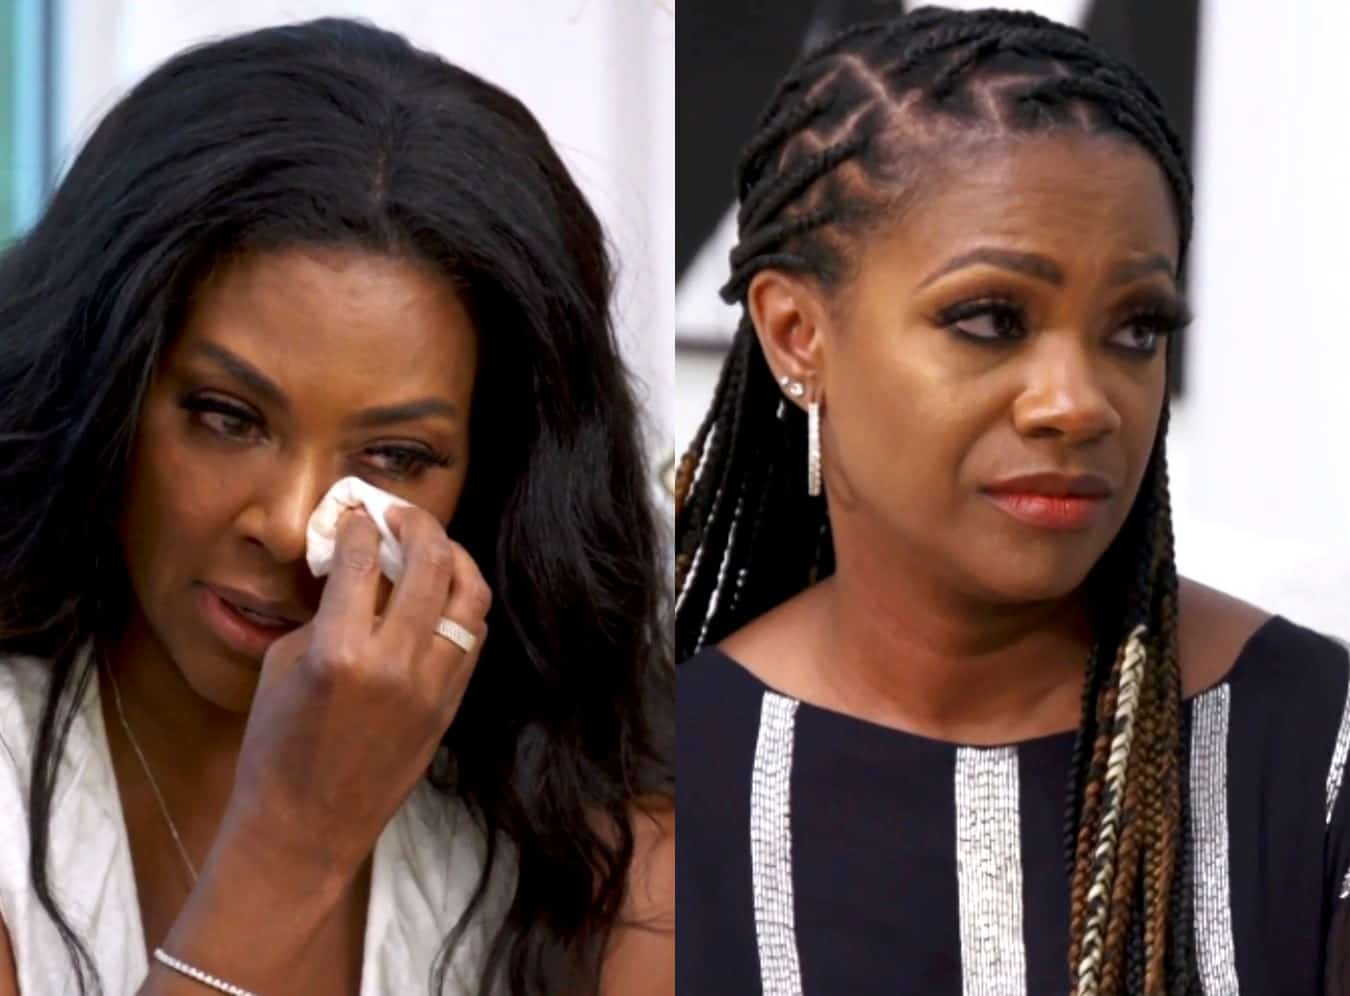 RHOA Recap: Kenya Cries as She Opens Up About Her Marriage Struggles to Kandi